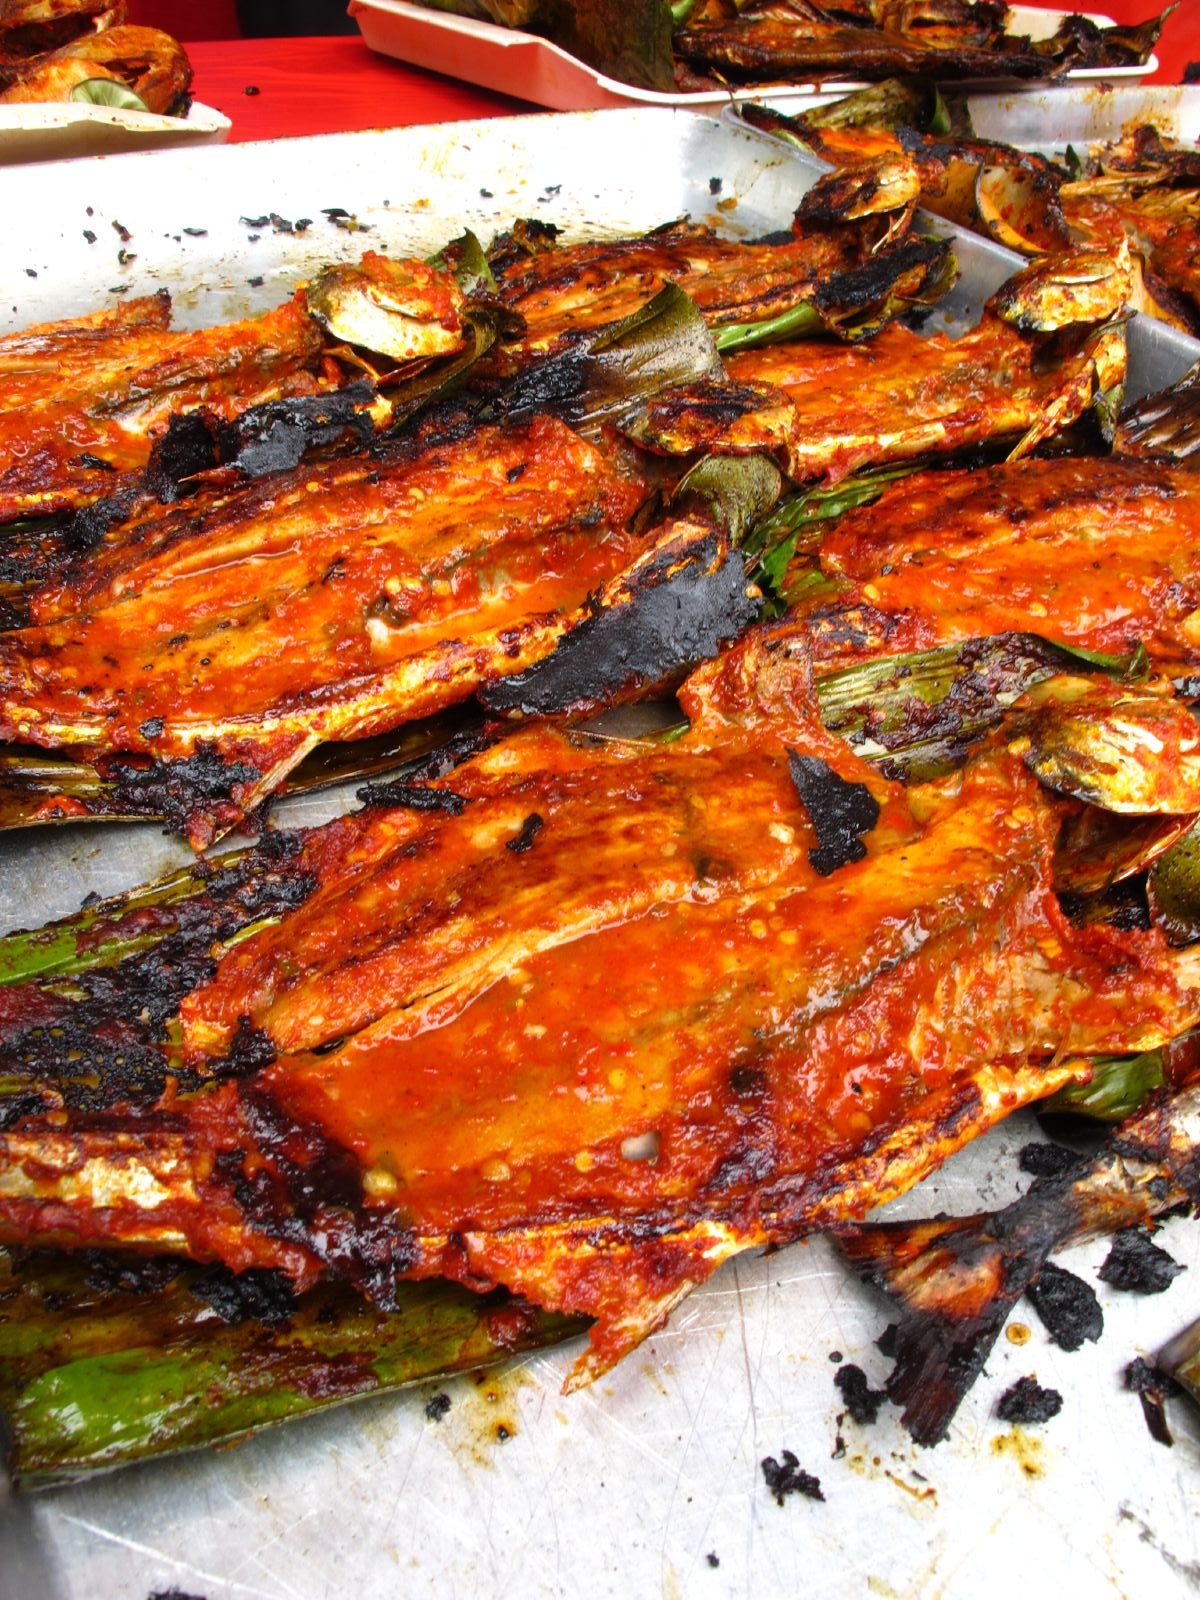 Ikan bakar is one of Indonesian foods you need to try, check out the other foods in Indonesia to eat.